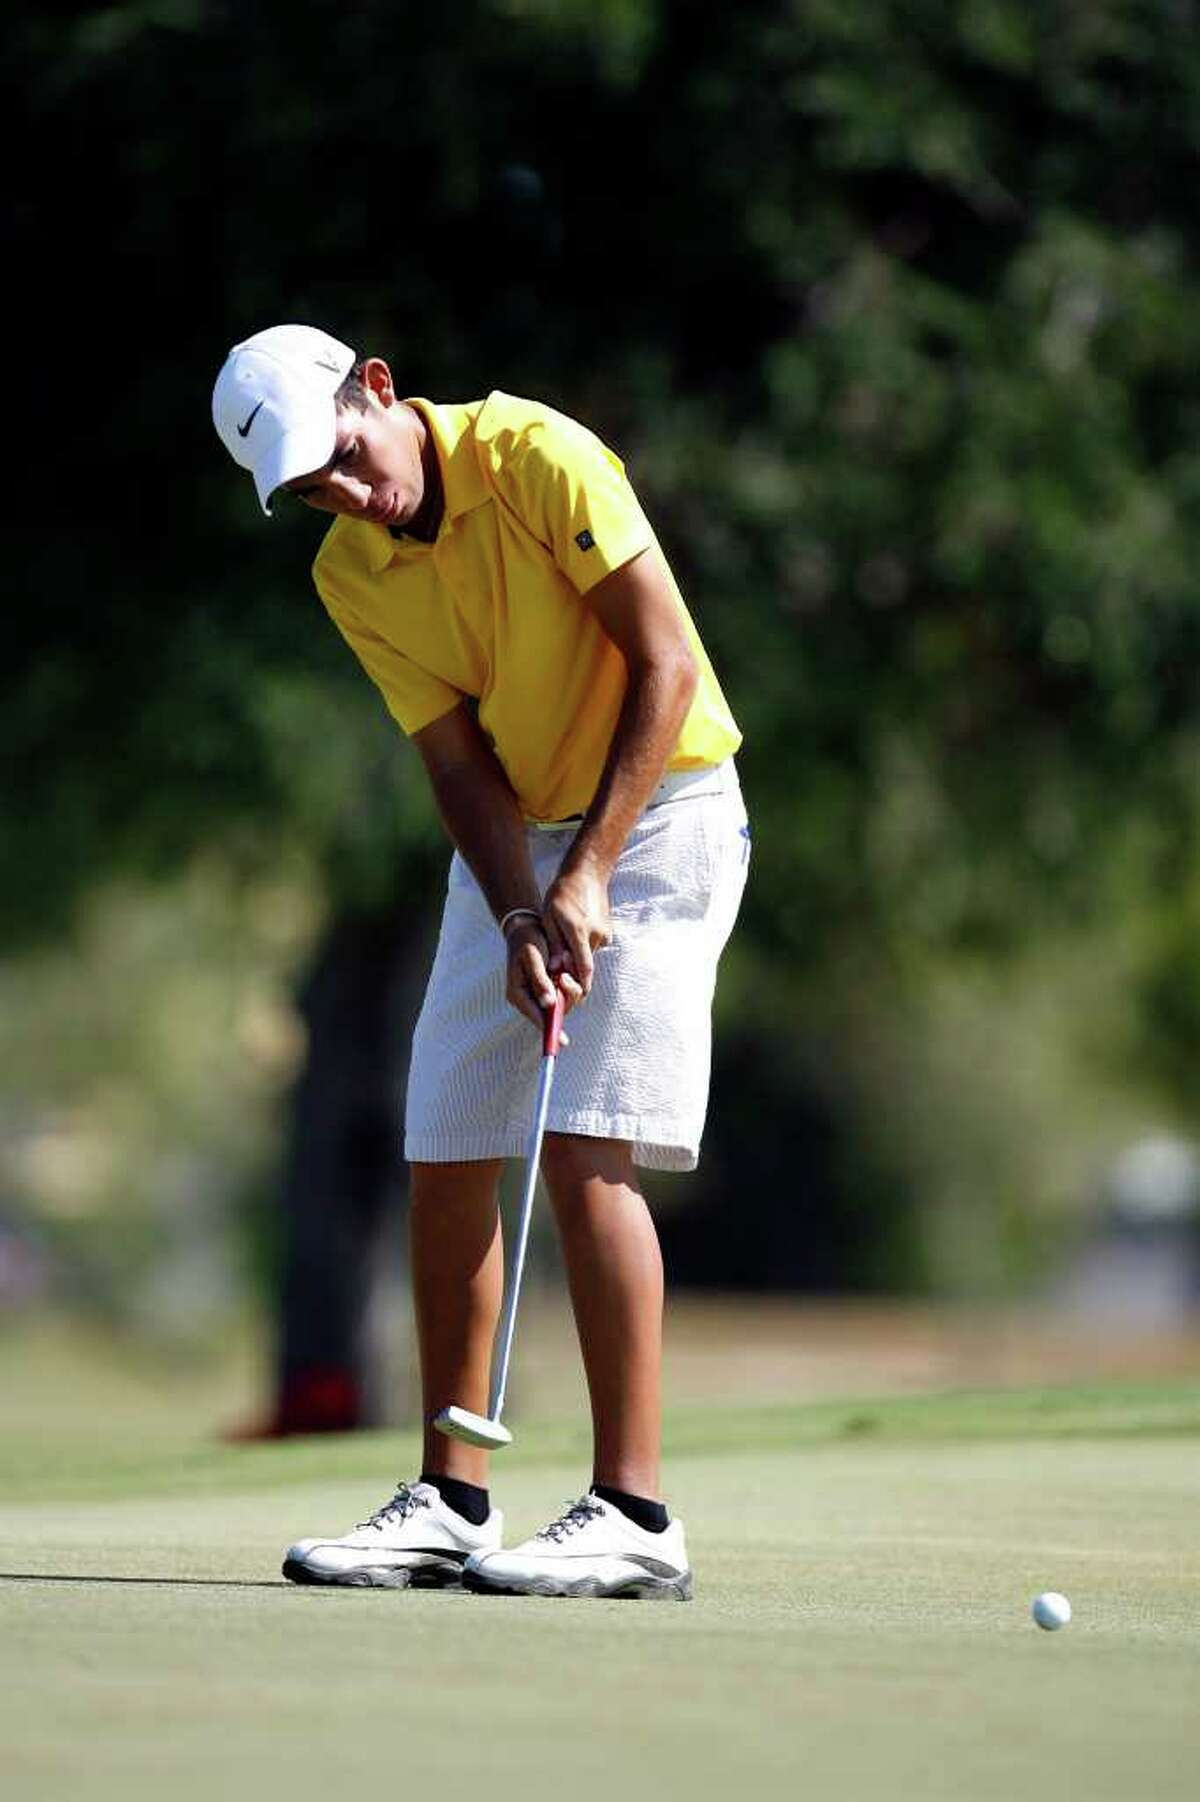 Alex Bissaro putts during the Greater San Antonio Junior Championship at Brackenridge Golf Course on Thursday, July 28, 2011. Bissaro gained the title after losing on the final hole last year.